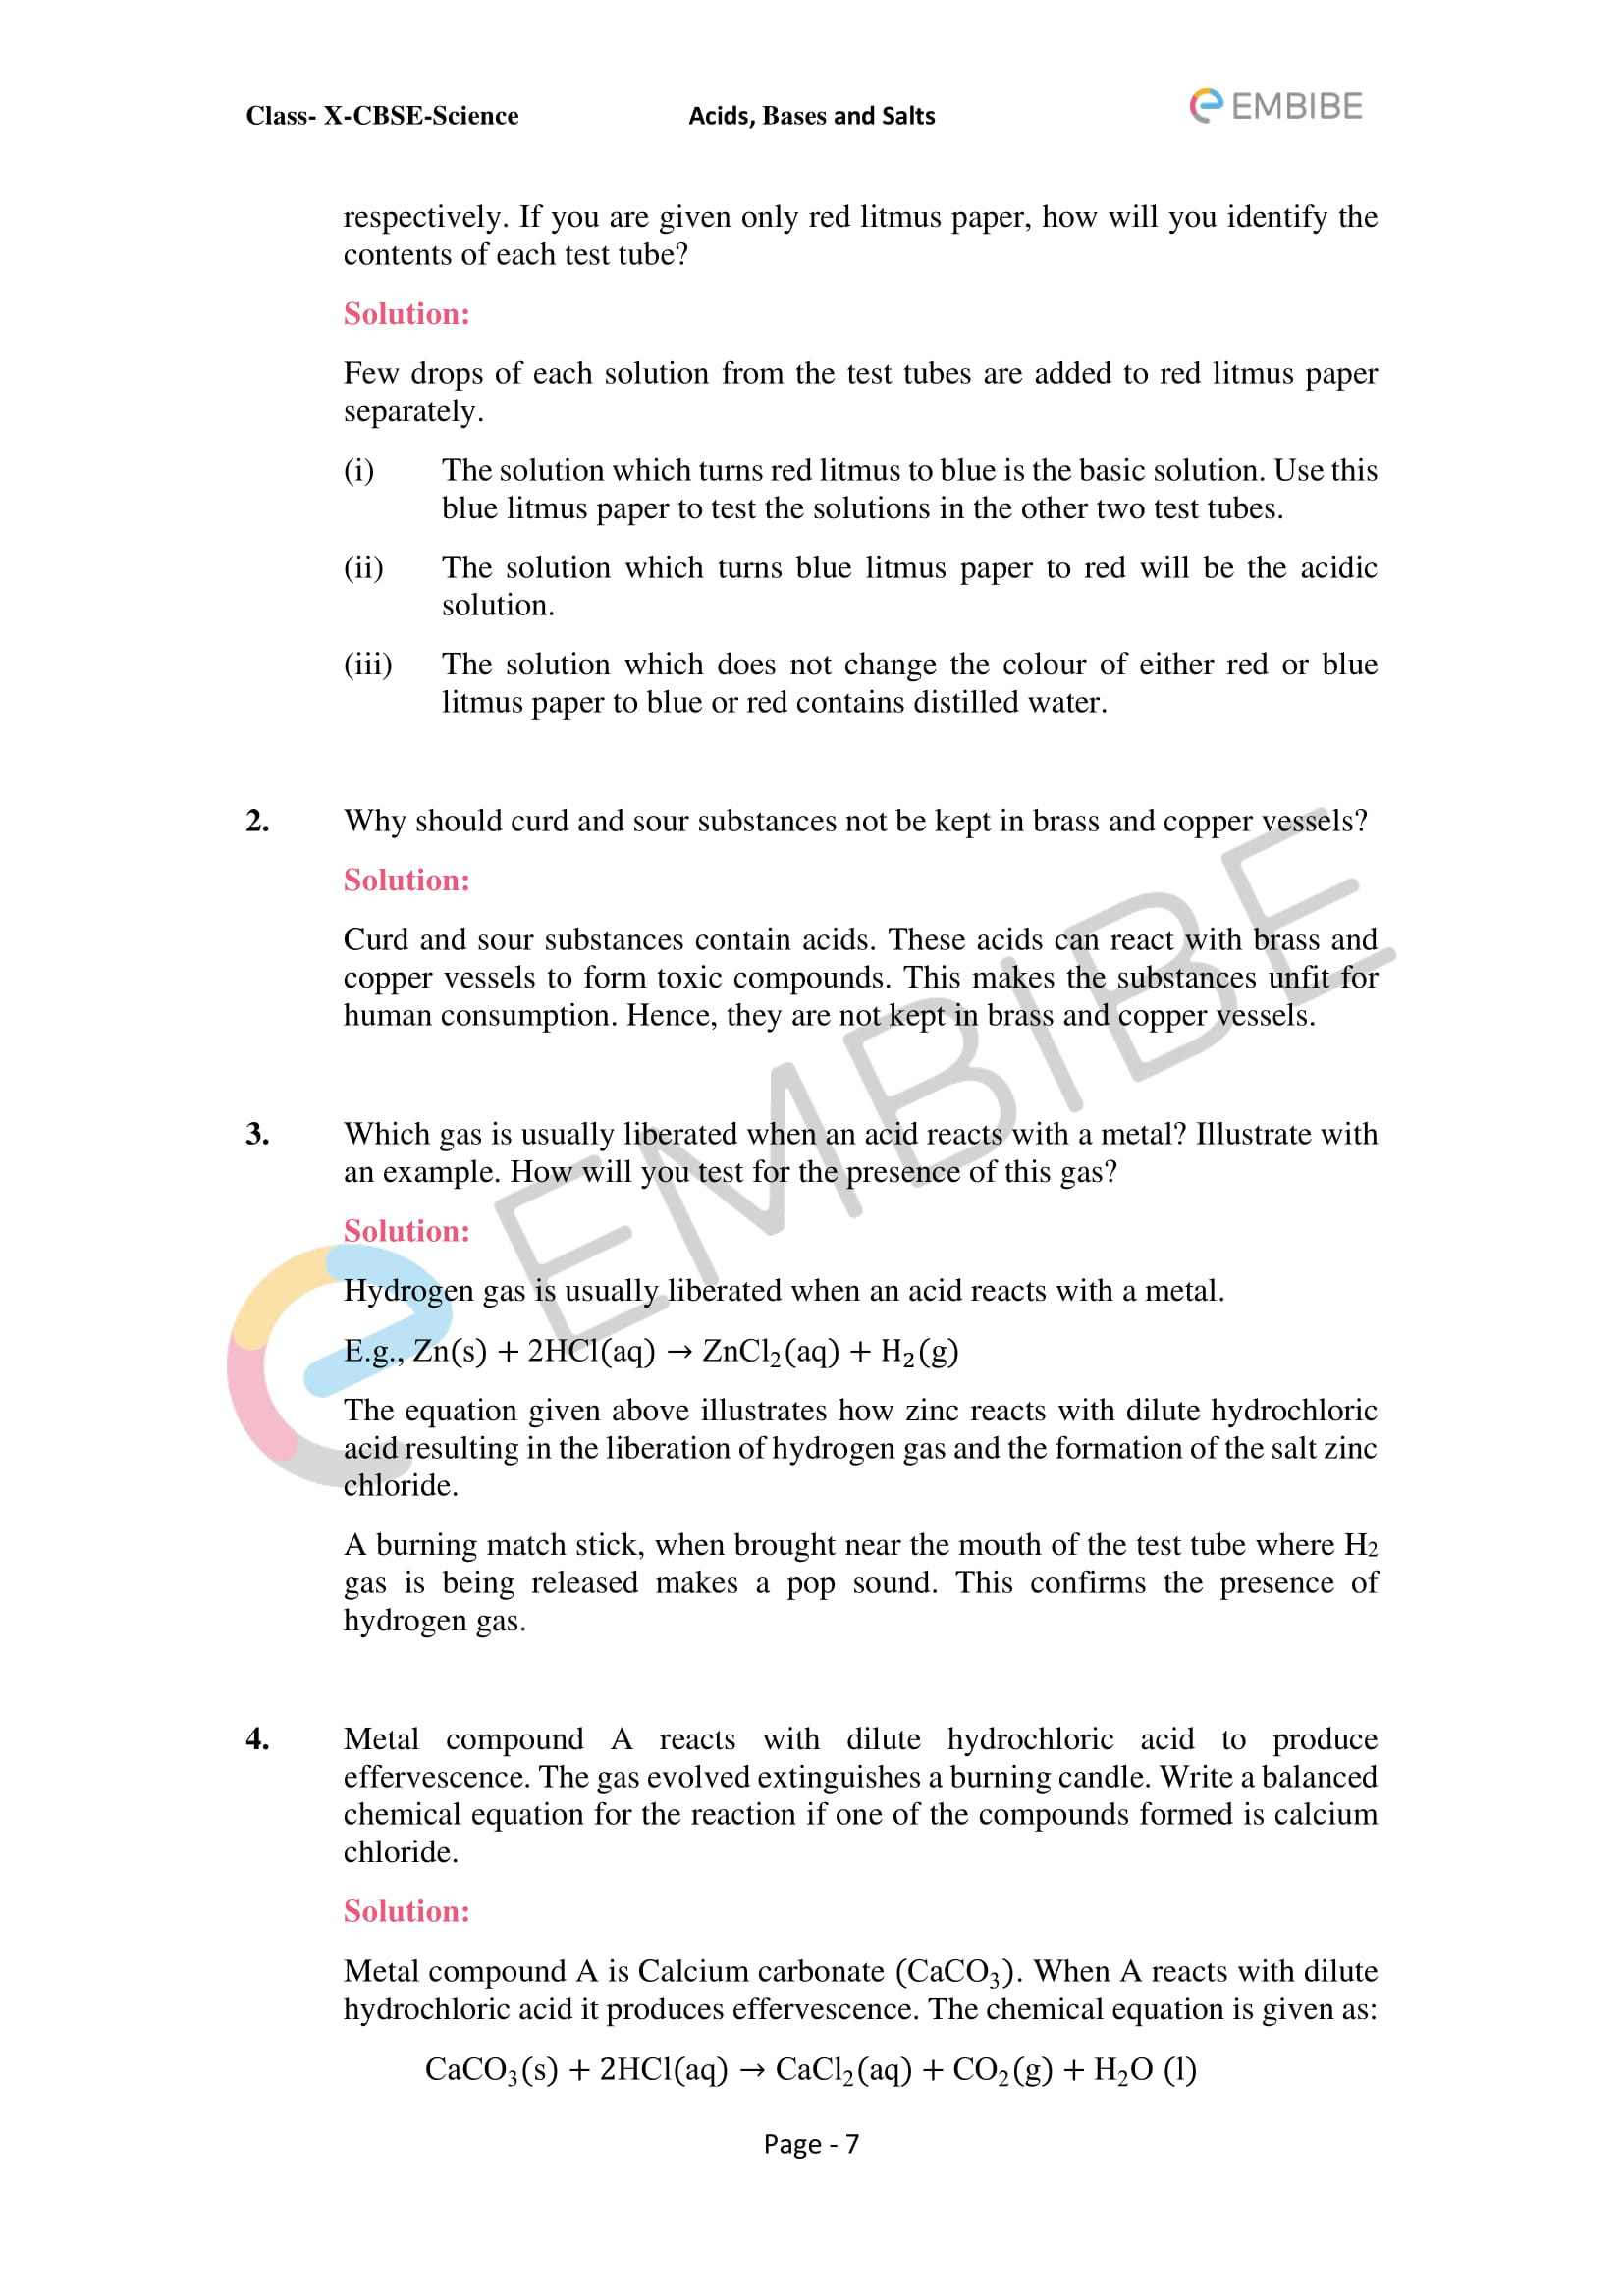 CBSE NCERT Solutions For Class 10 Science Chapter 2: Acids, Bases & Salts - 7